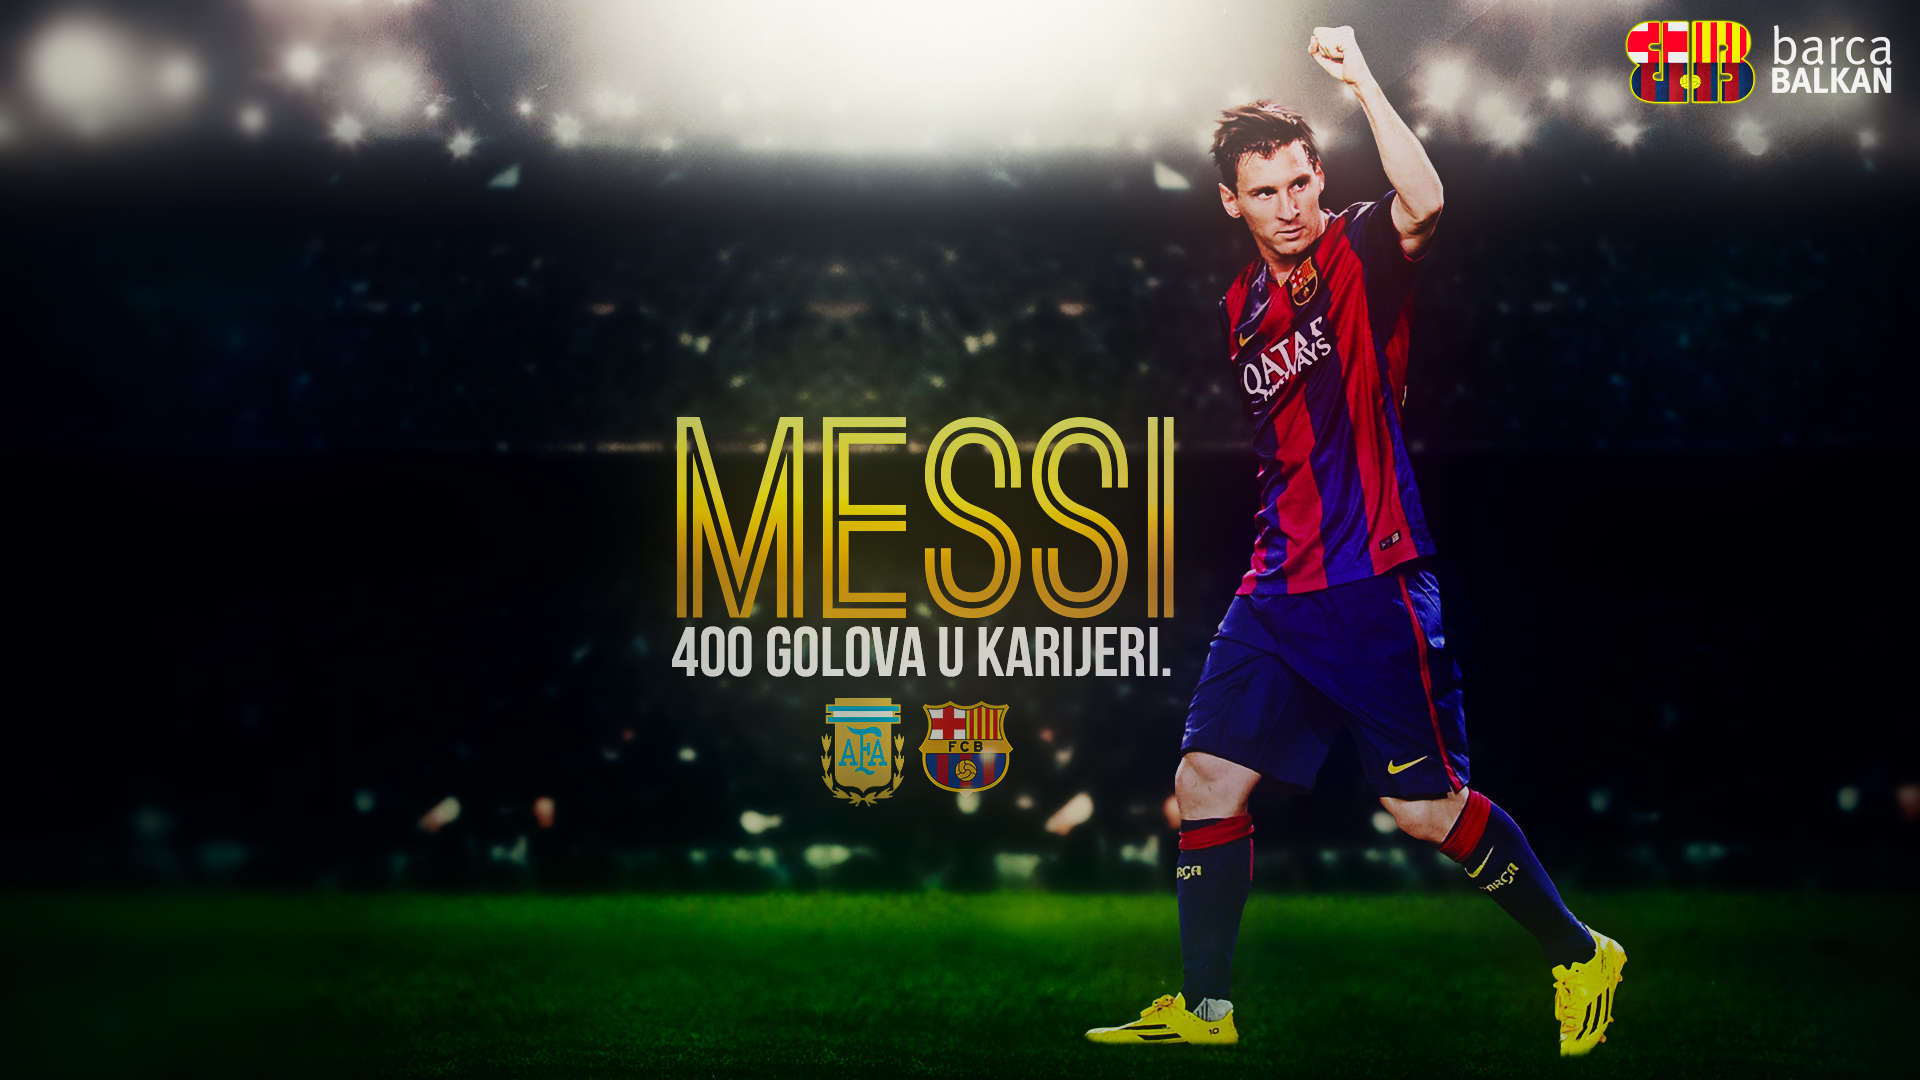 2015 Lionel Messi HD Images AMBWallpapers 1920x1080